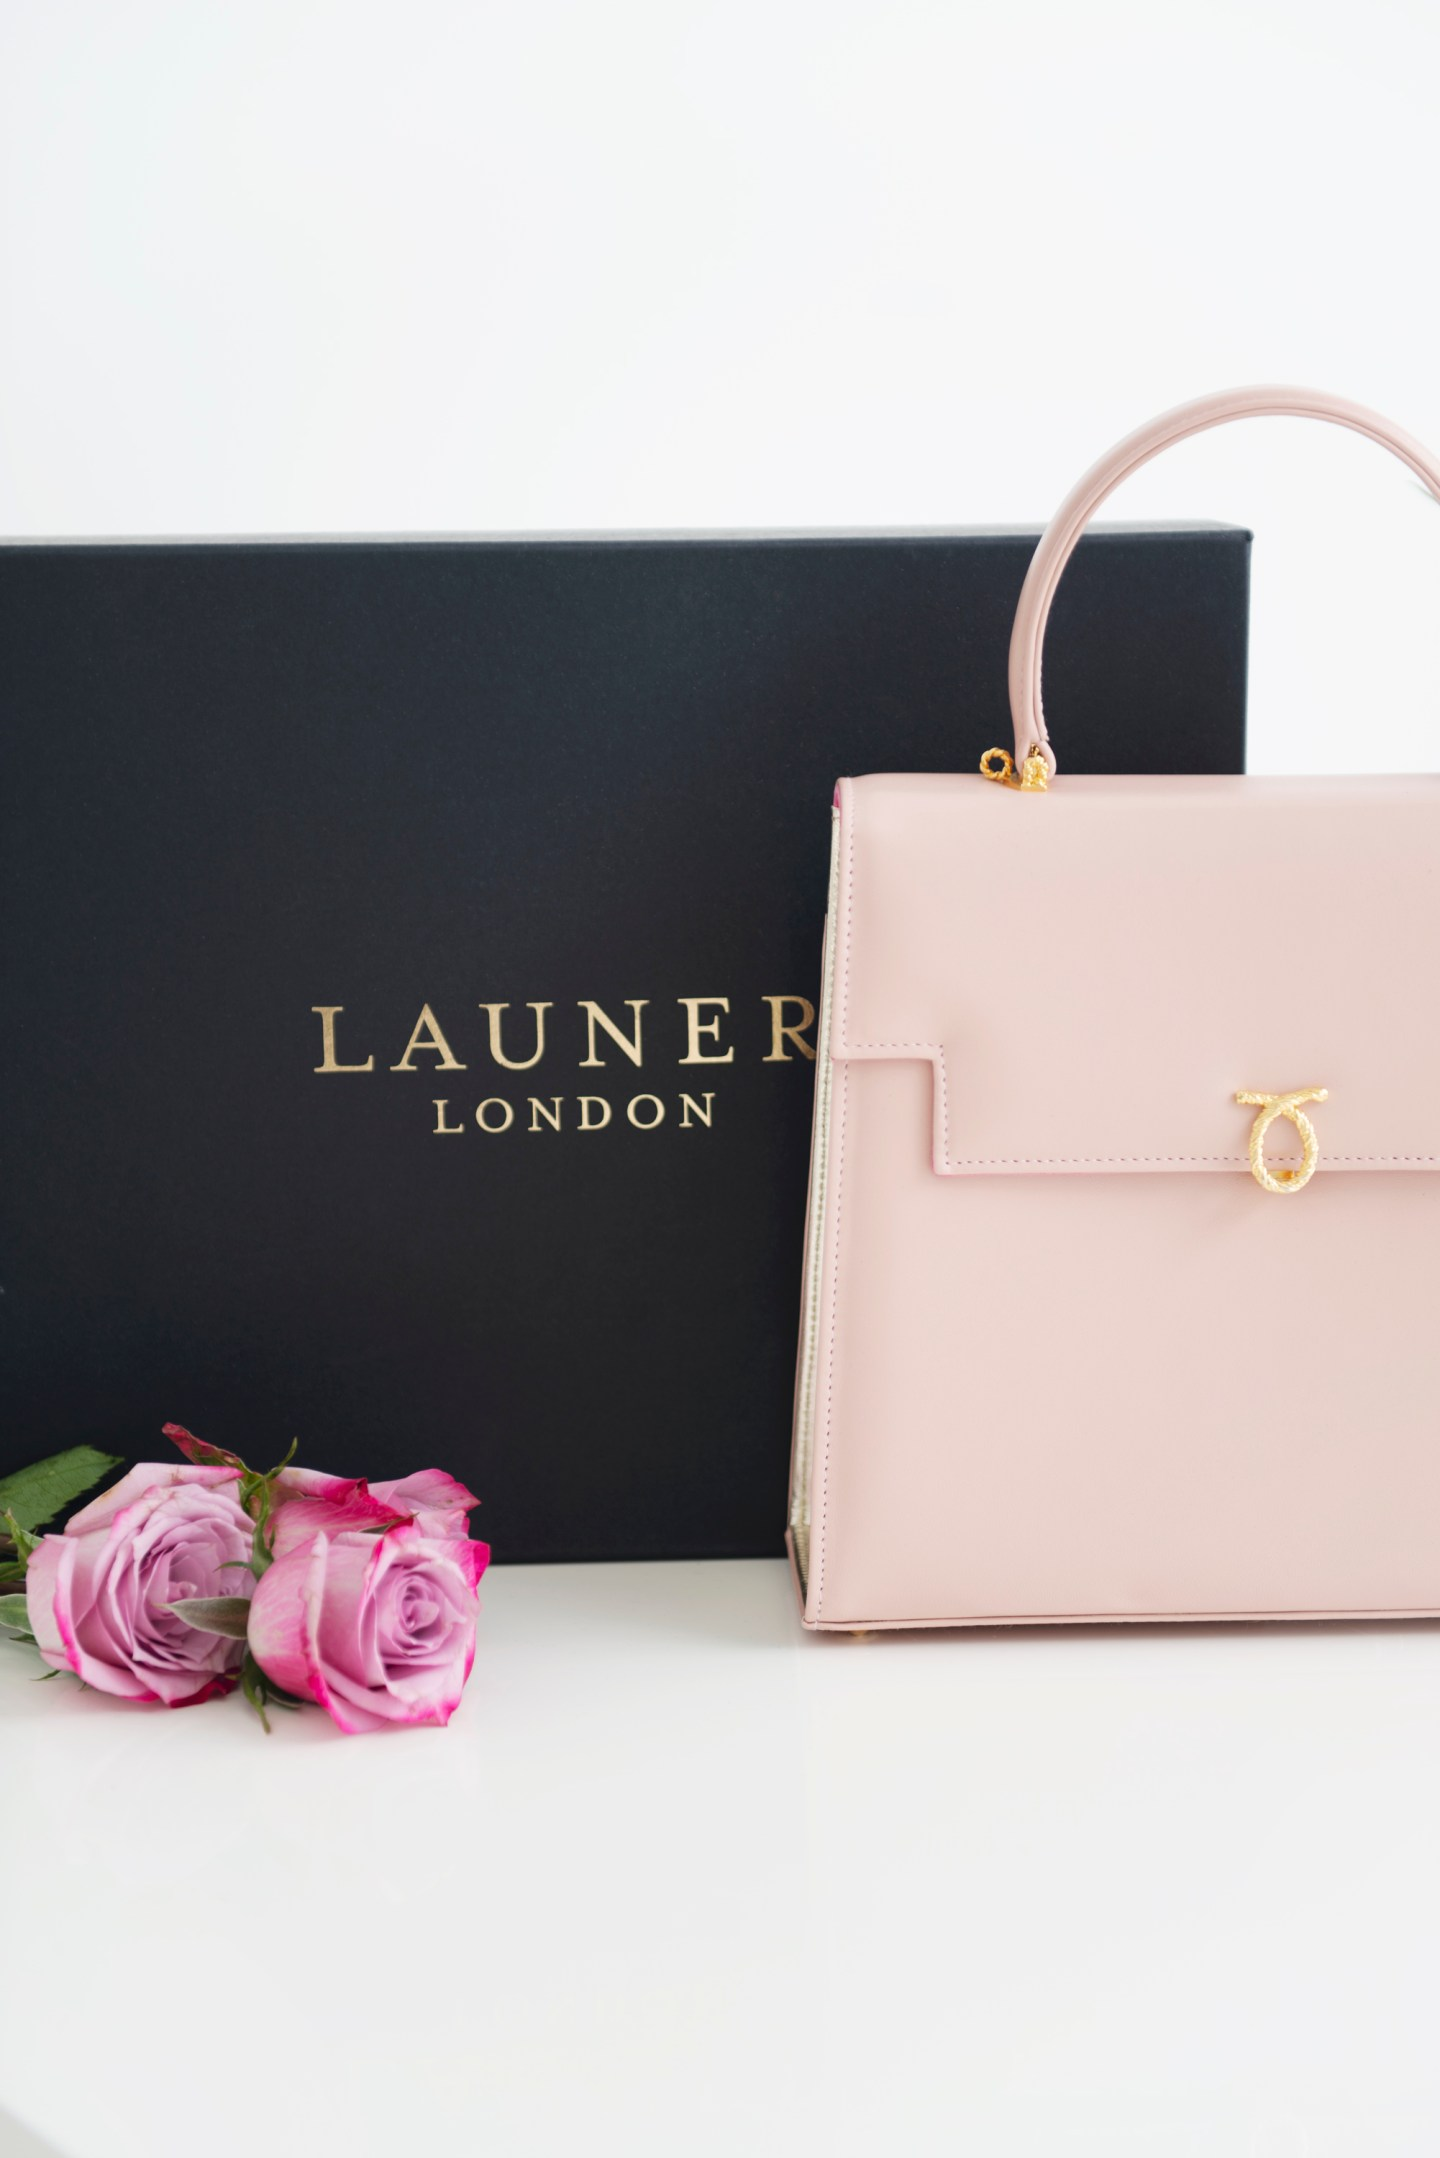 9513a367ad Feeling like a Queen with my Launer Bespoke Bag – Laetitia Tomasso